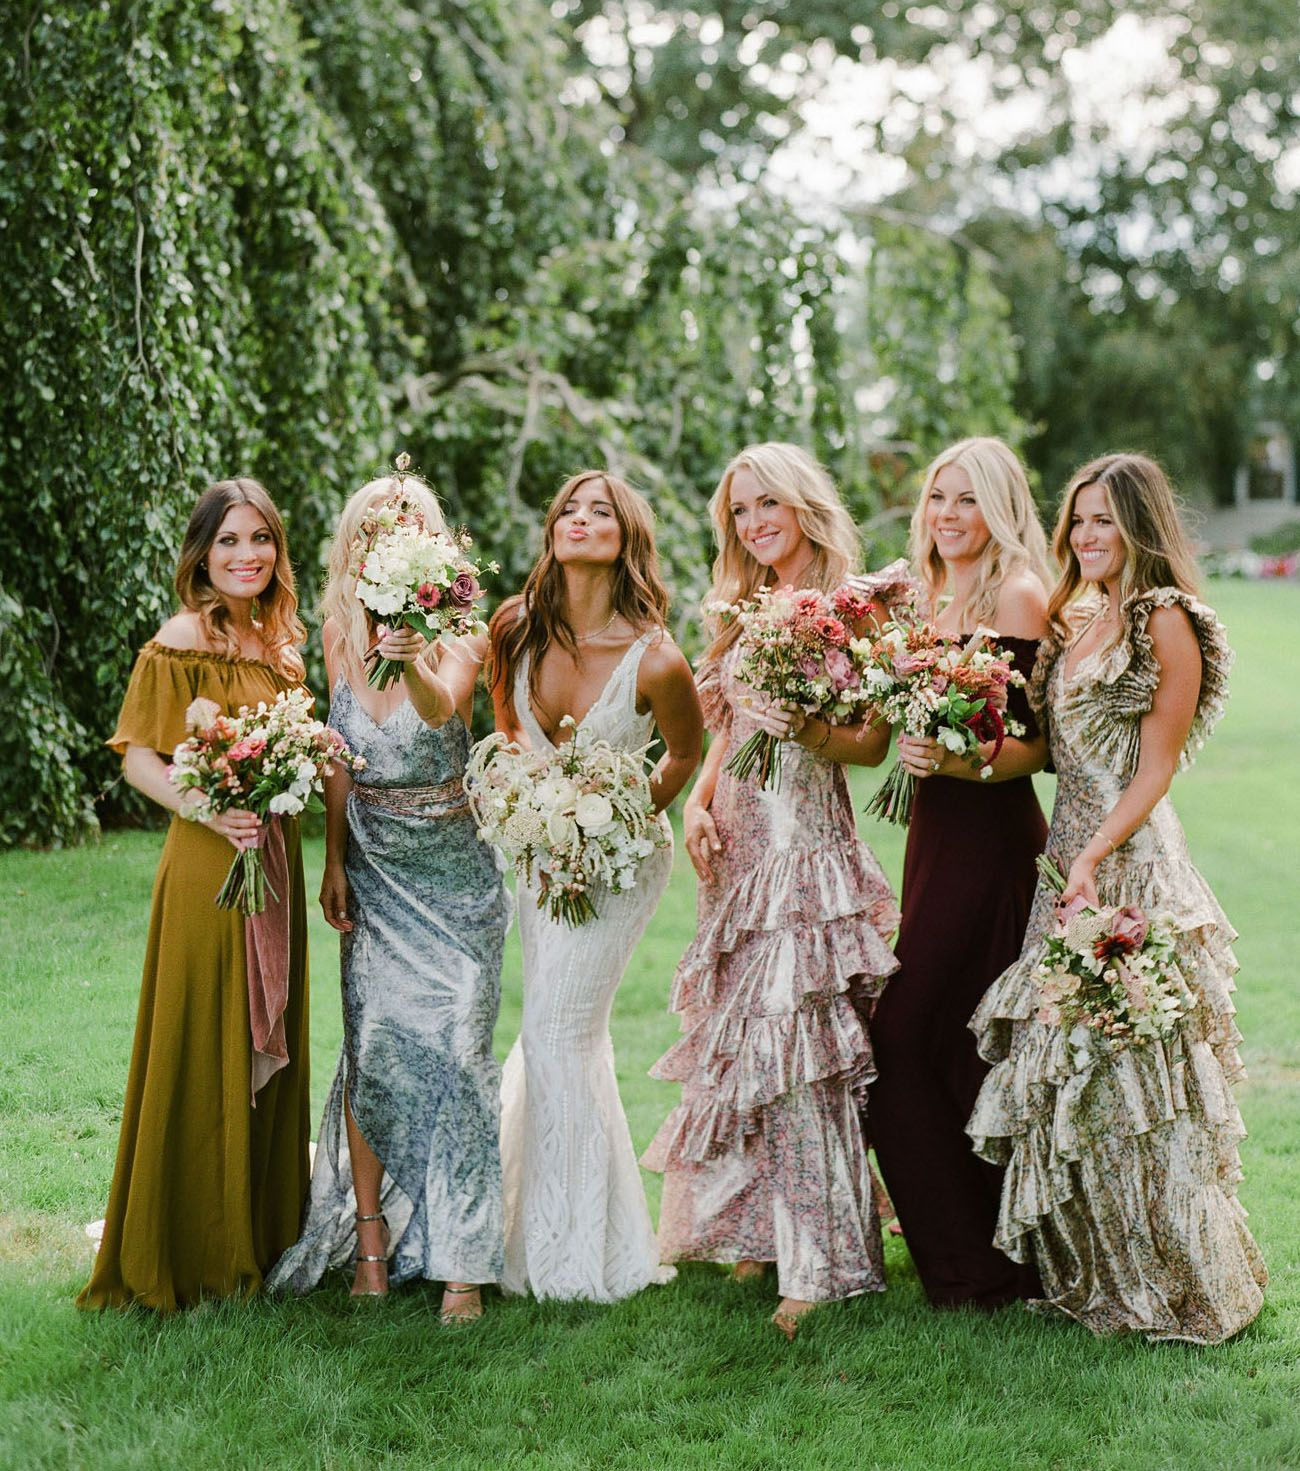 All The Details Of Rocky Barnes Matthew Cooper S Seriously Stylish Dreamy Bohemian Wedding Green Wedding Shoes Bridesmaid Dresses Boho Printed Bridesmaid Dresses Bohemian Bridesmaid Dress